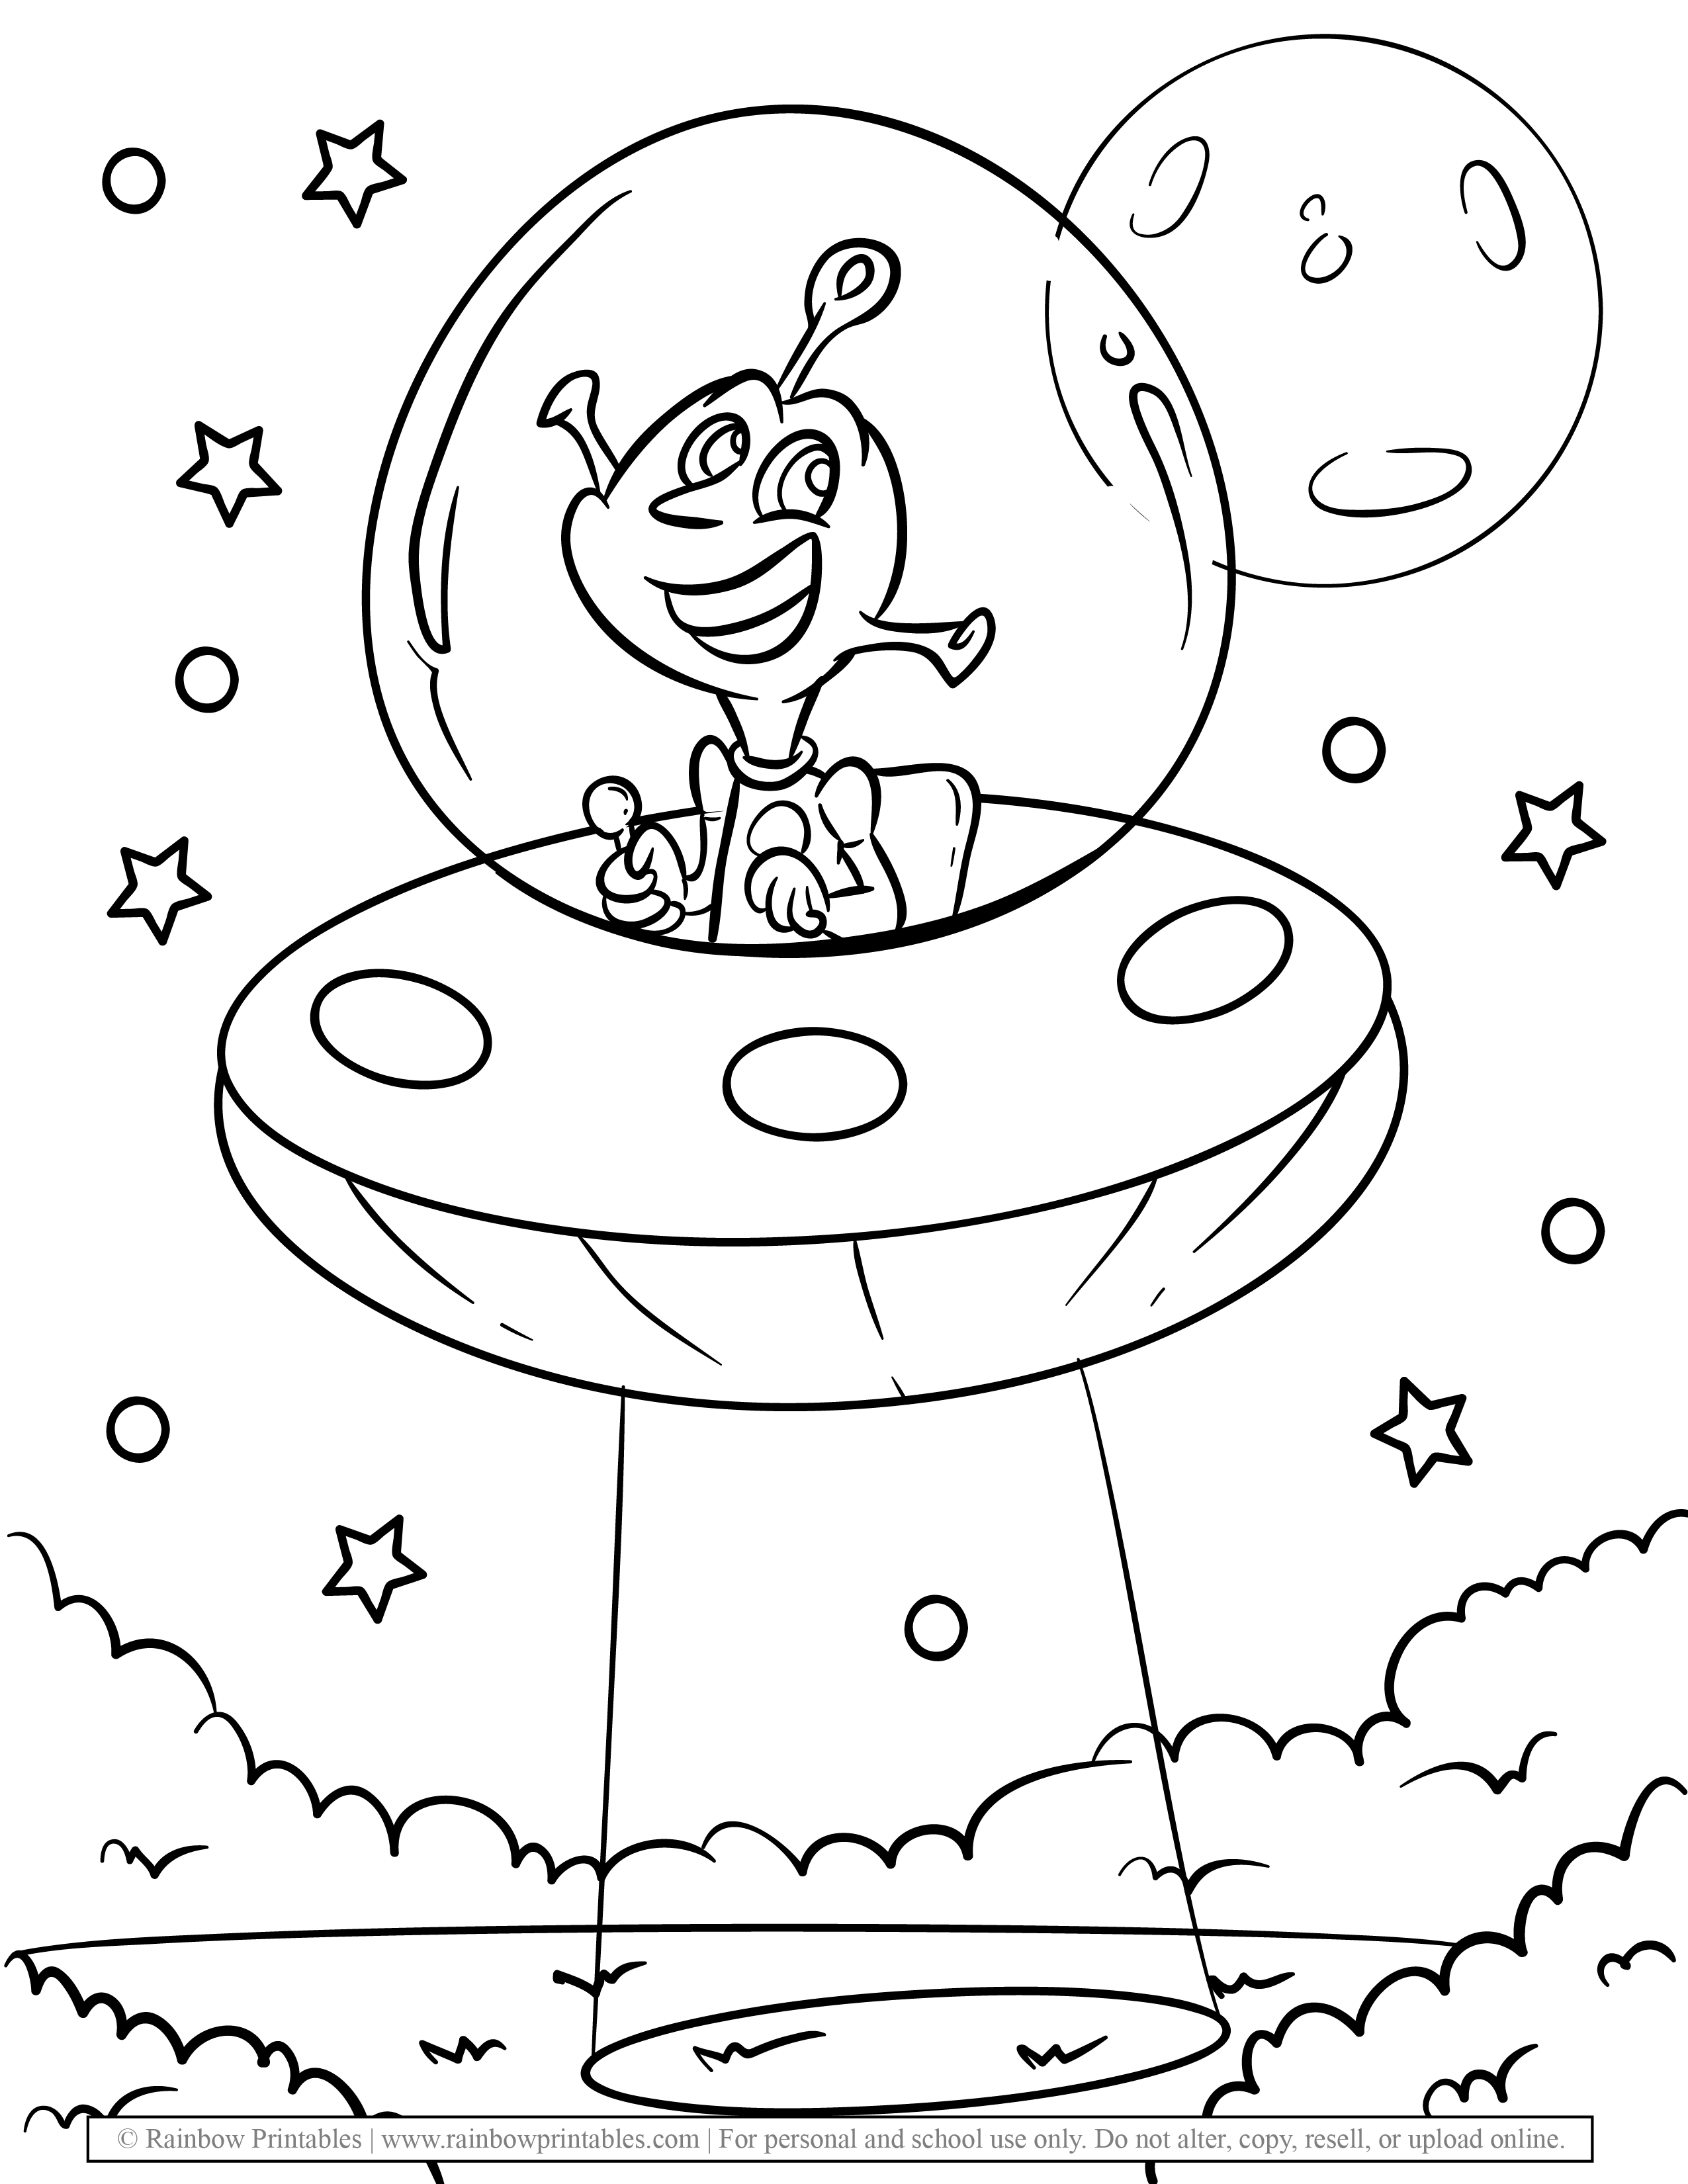 Cute Alien UFO Smiling Dark Night Coloring Pages for Kids